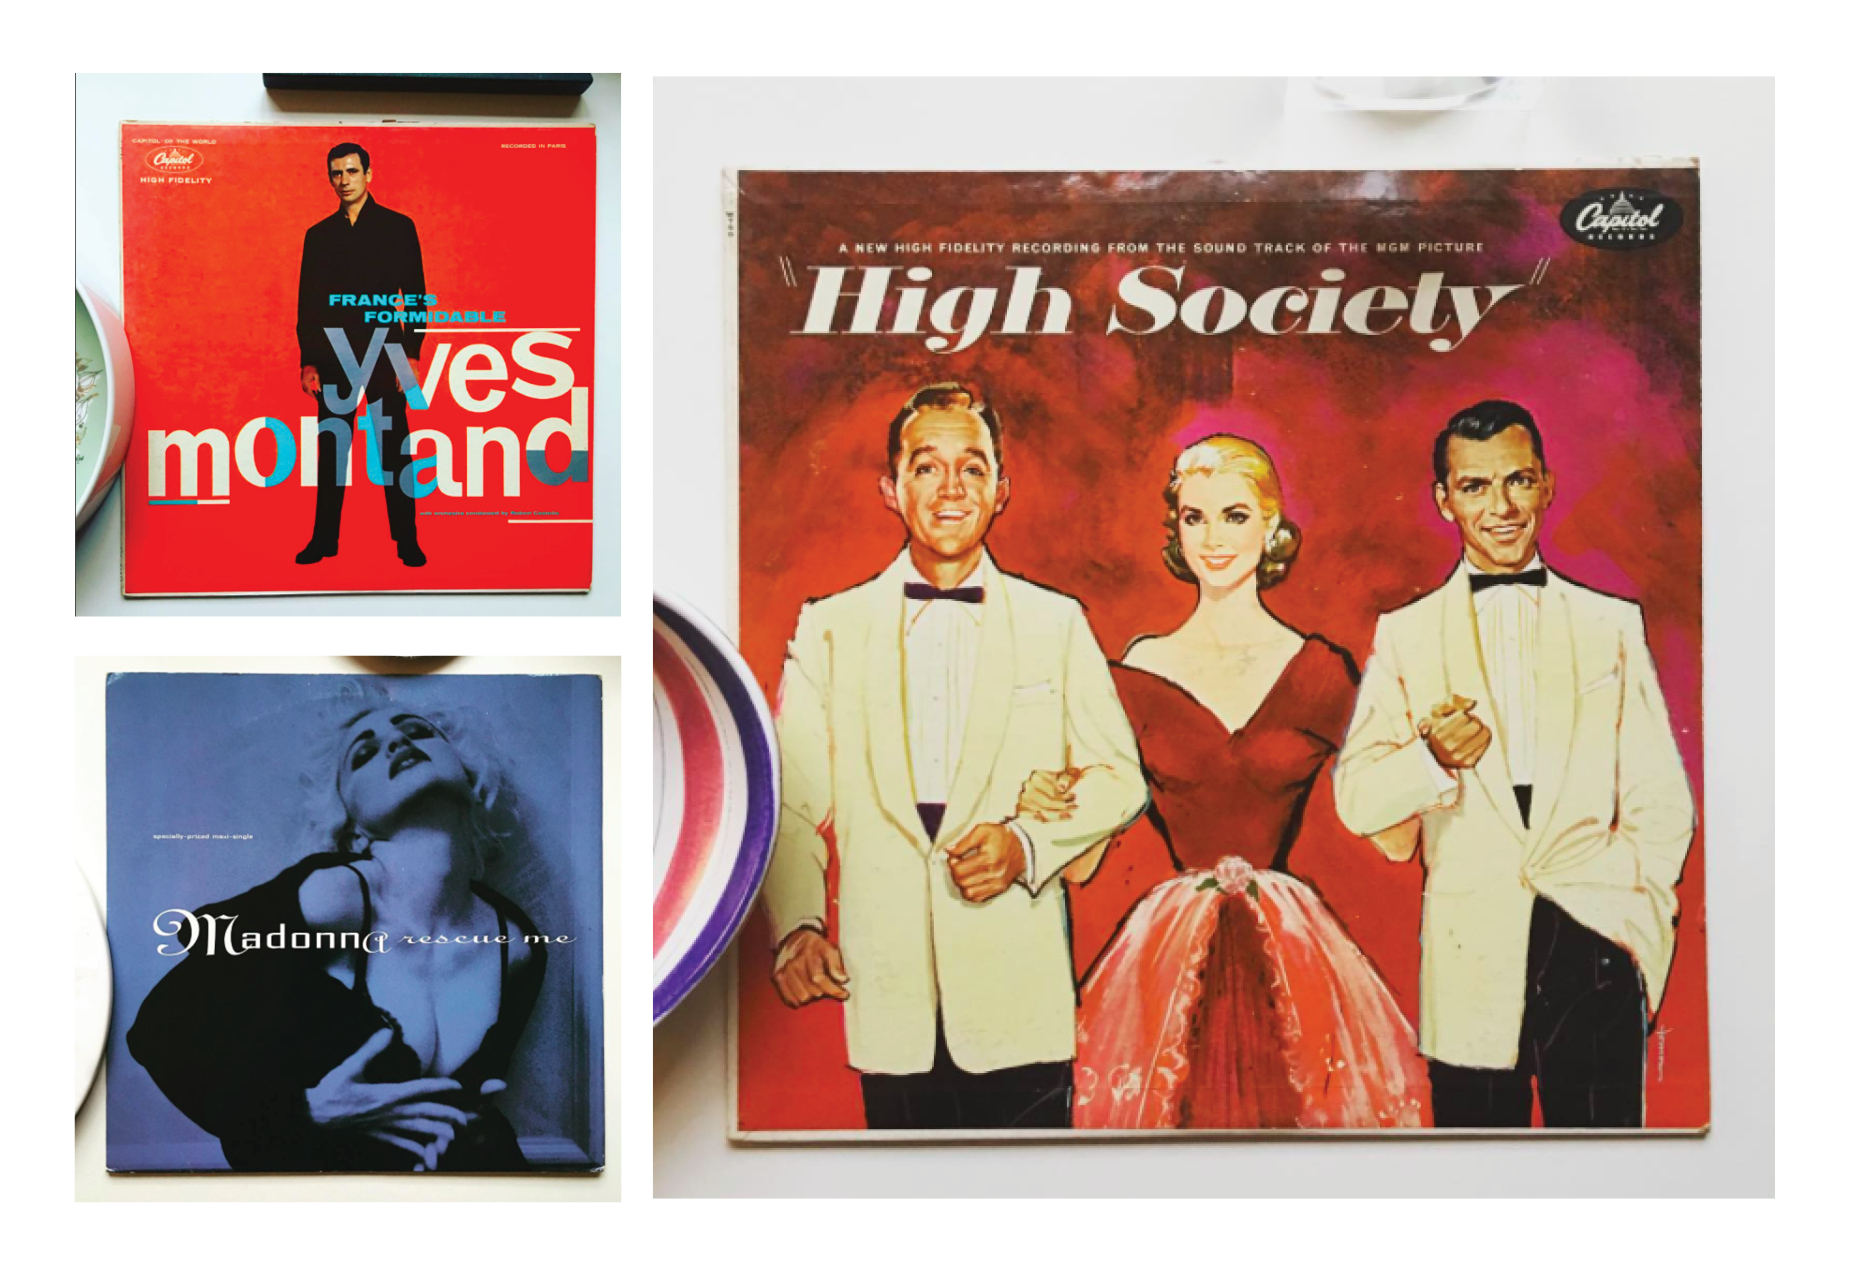 Clockwise: Yves Montand, High Society and Madonna